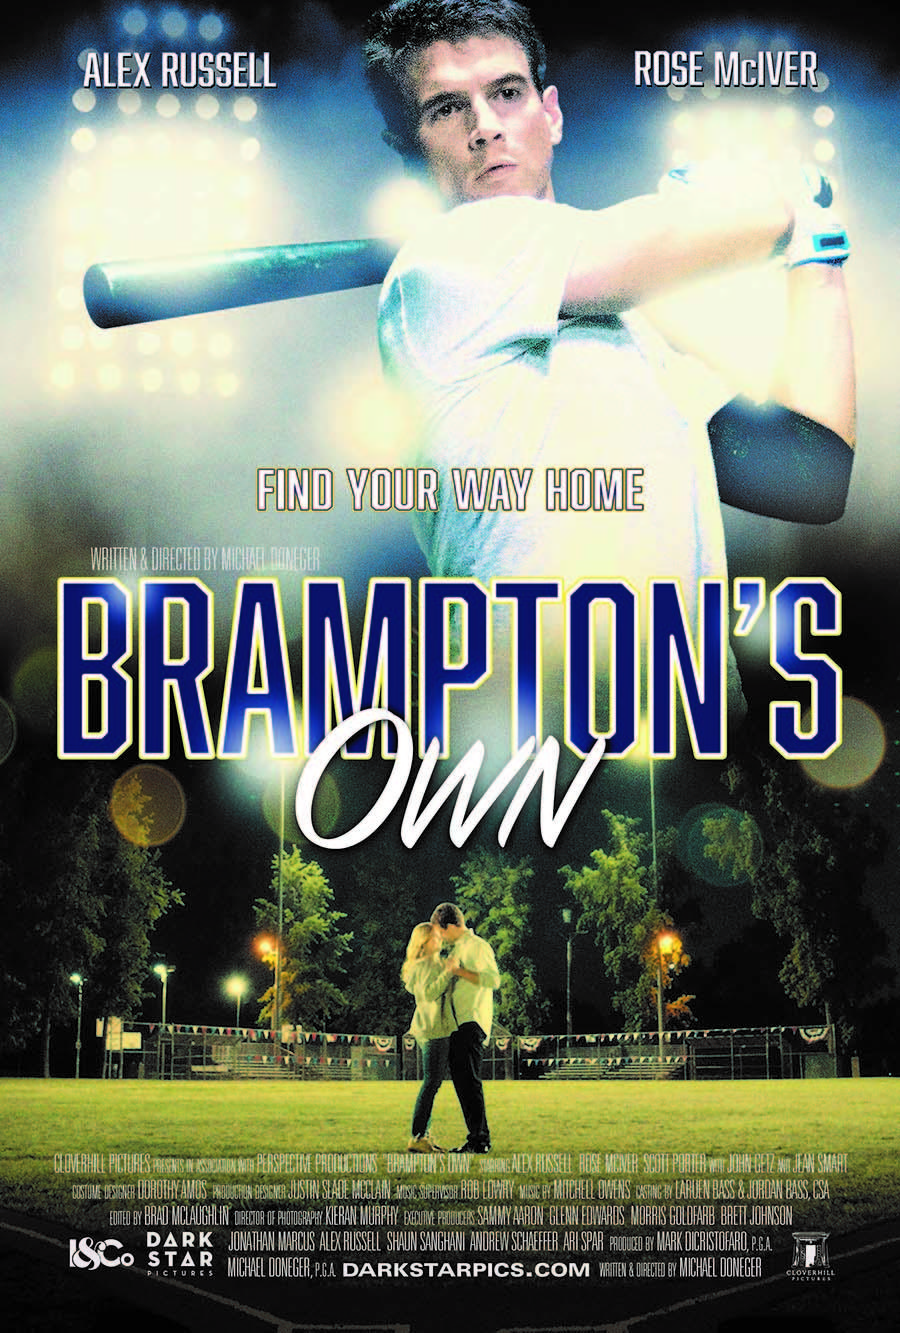 Brampton's Own poster art